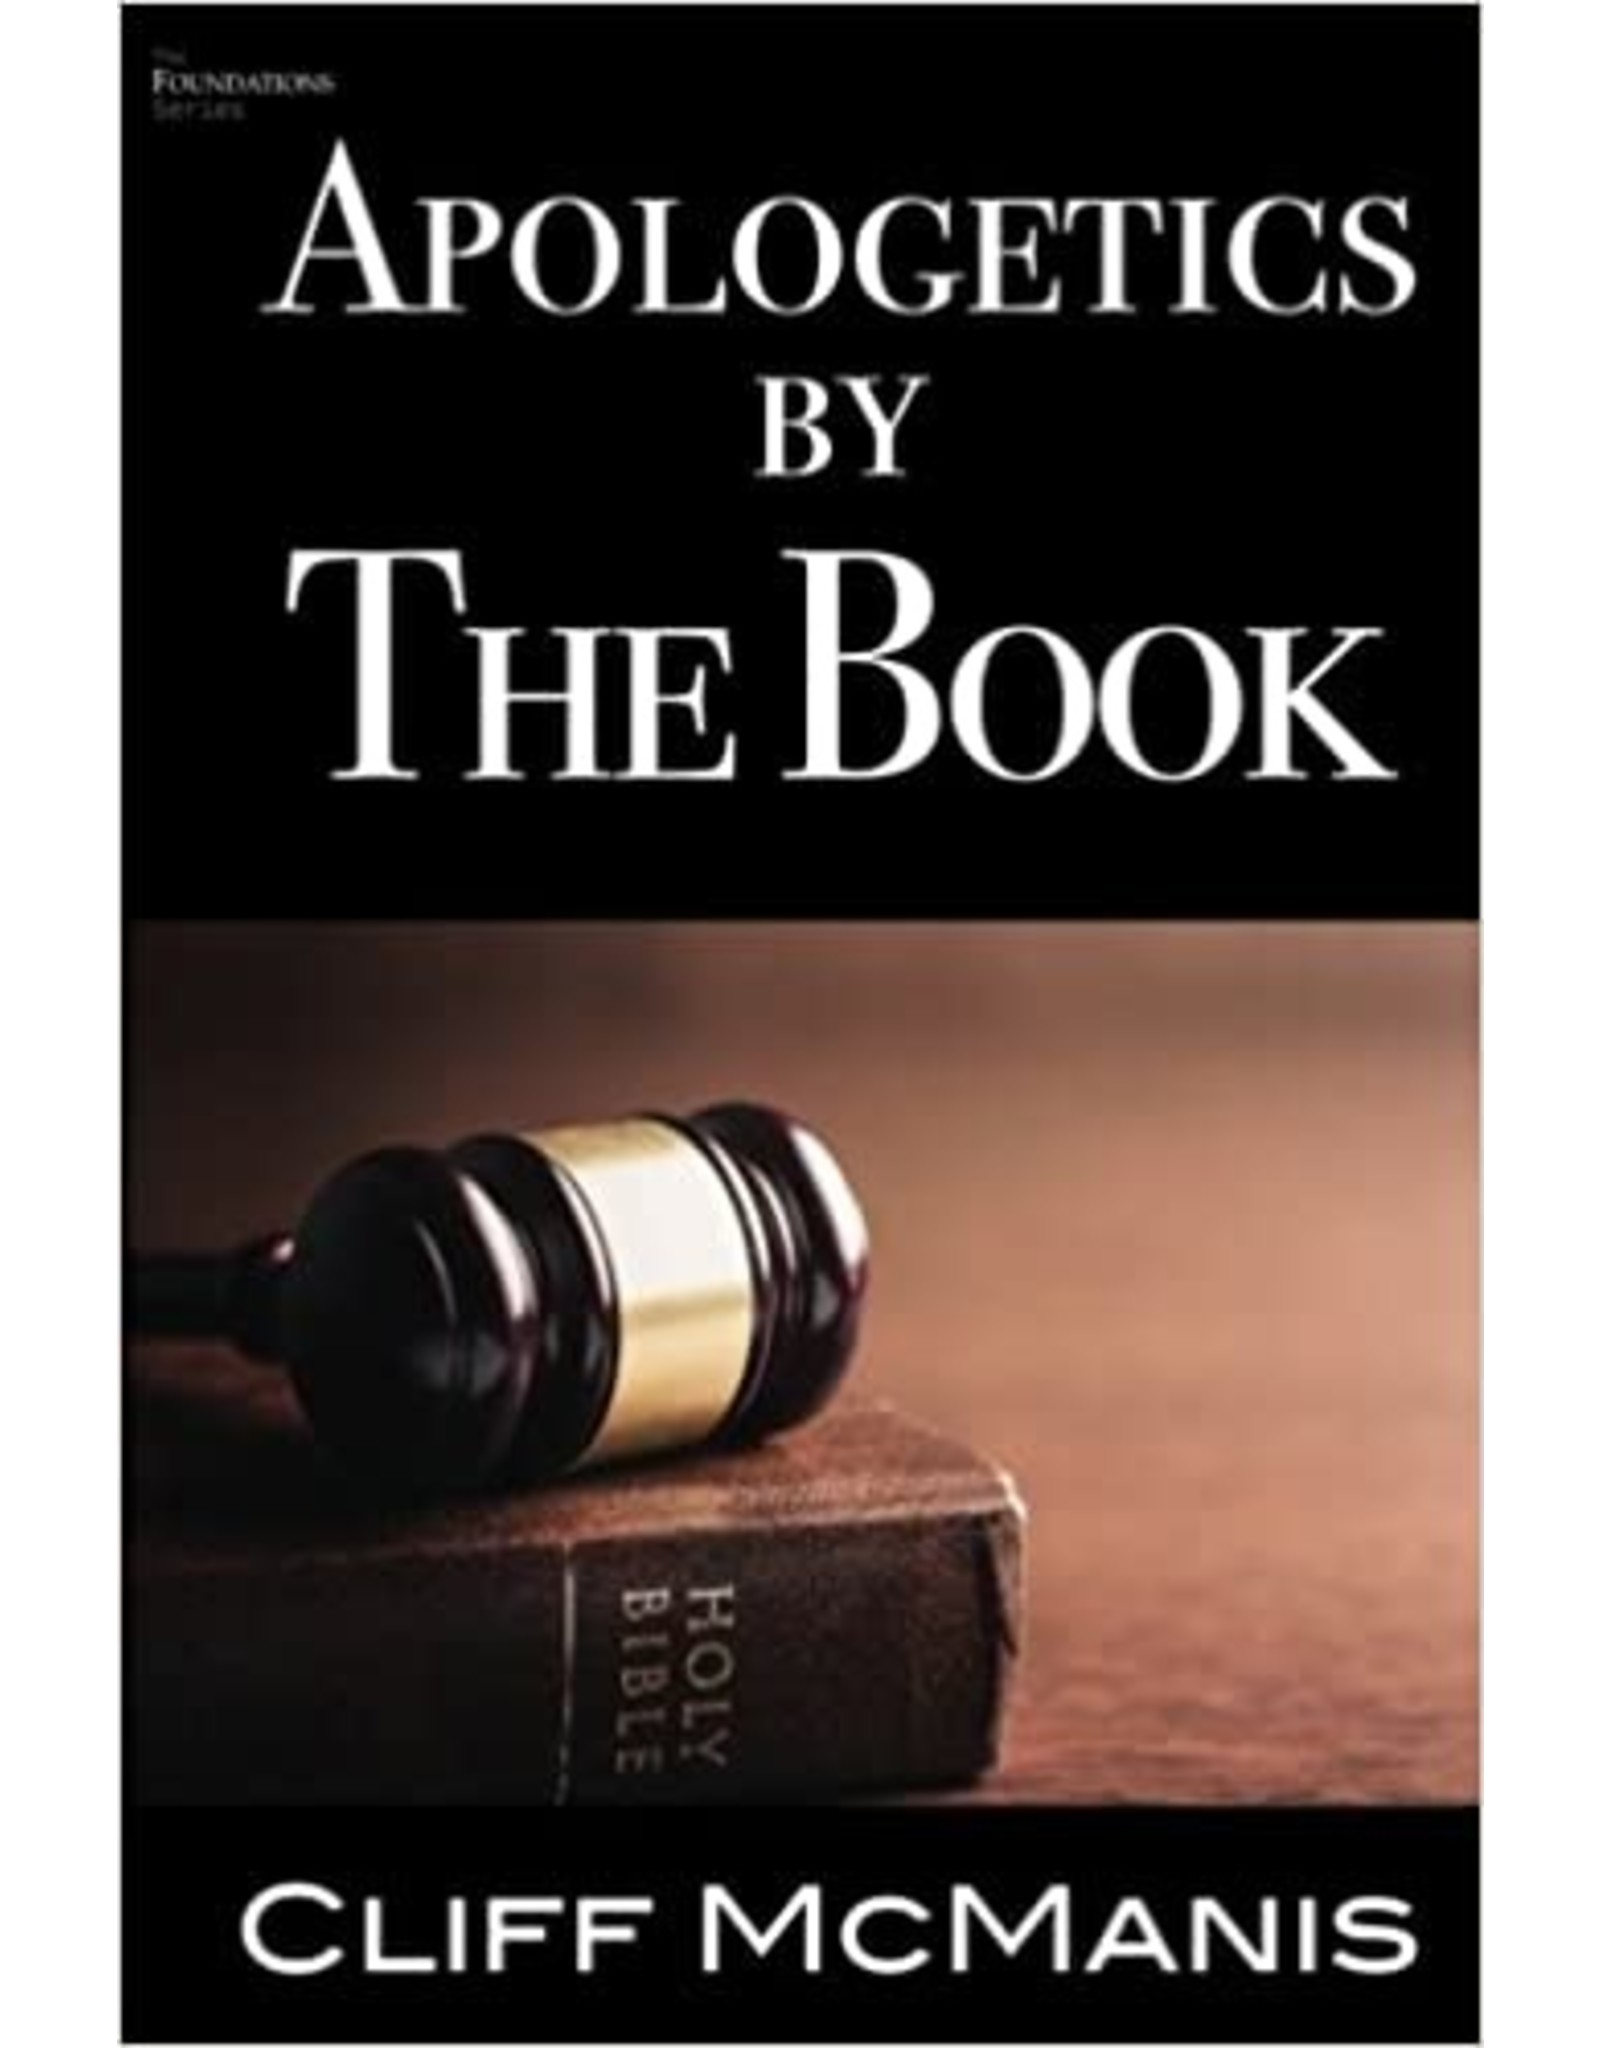 Cliff McManis Apologetics by the Book